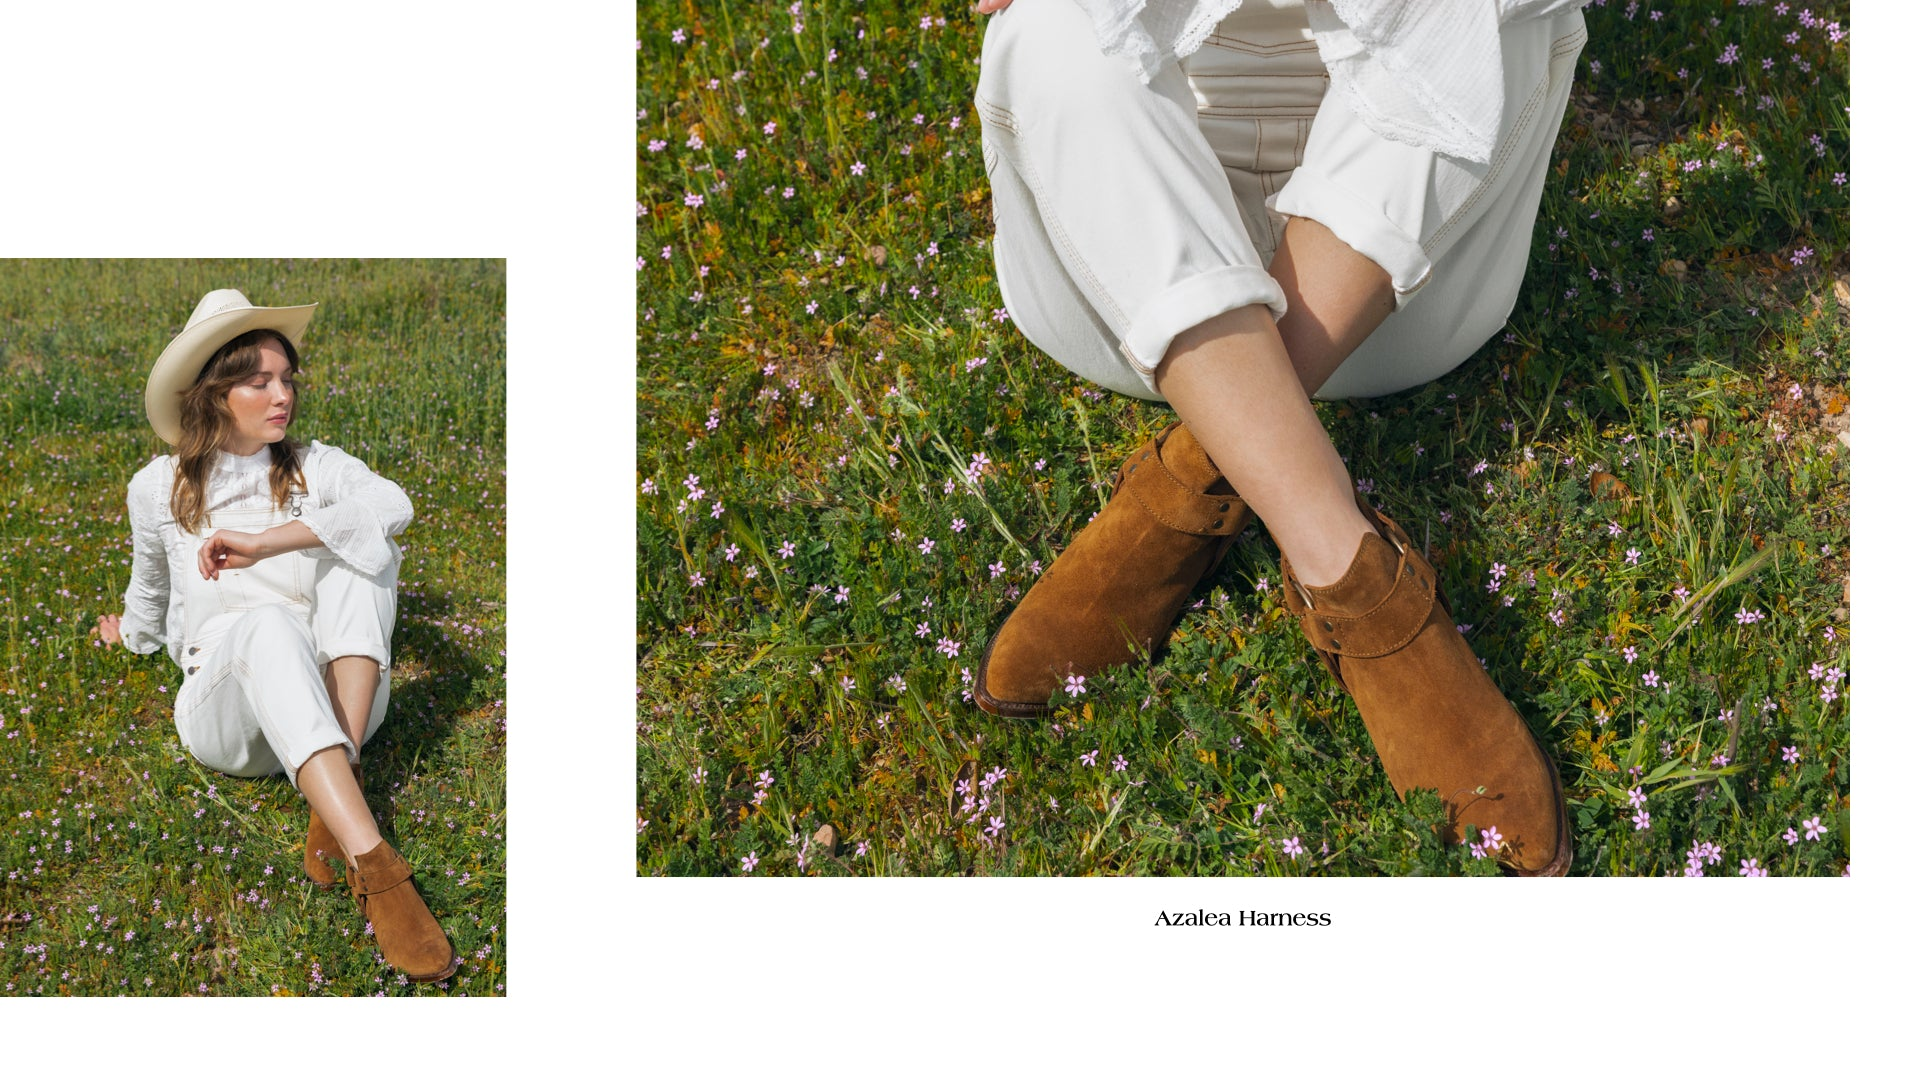 Ranch Road Boots-Women's Boots-Spring-Summer-2020-Azalea Harness-Suede-Brown-Moto-Booties